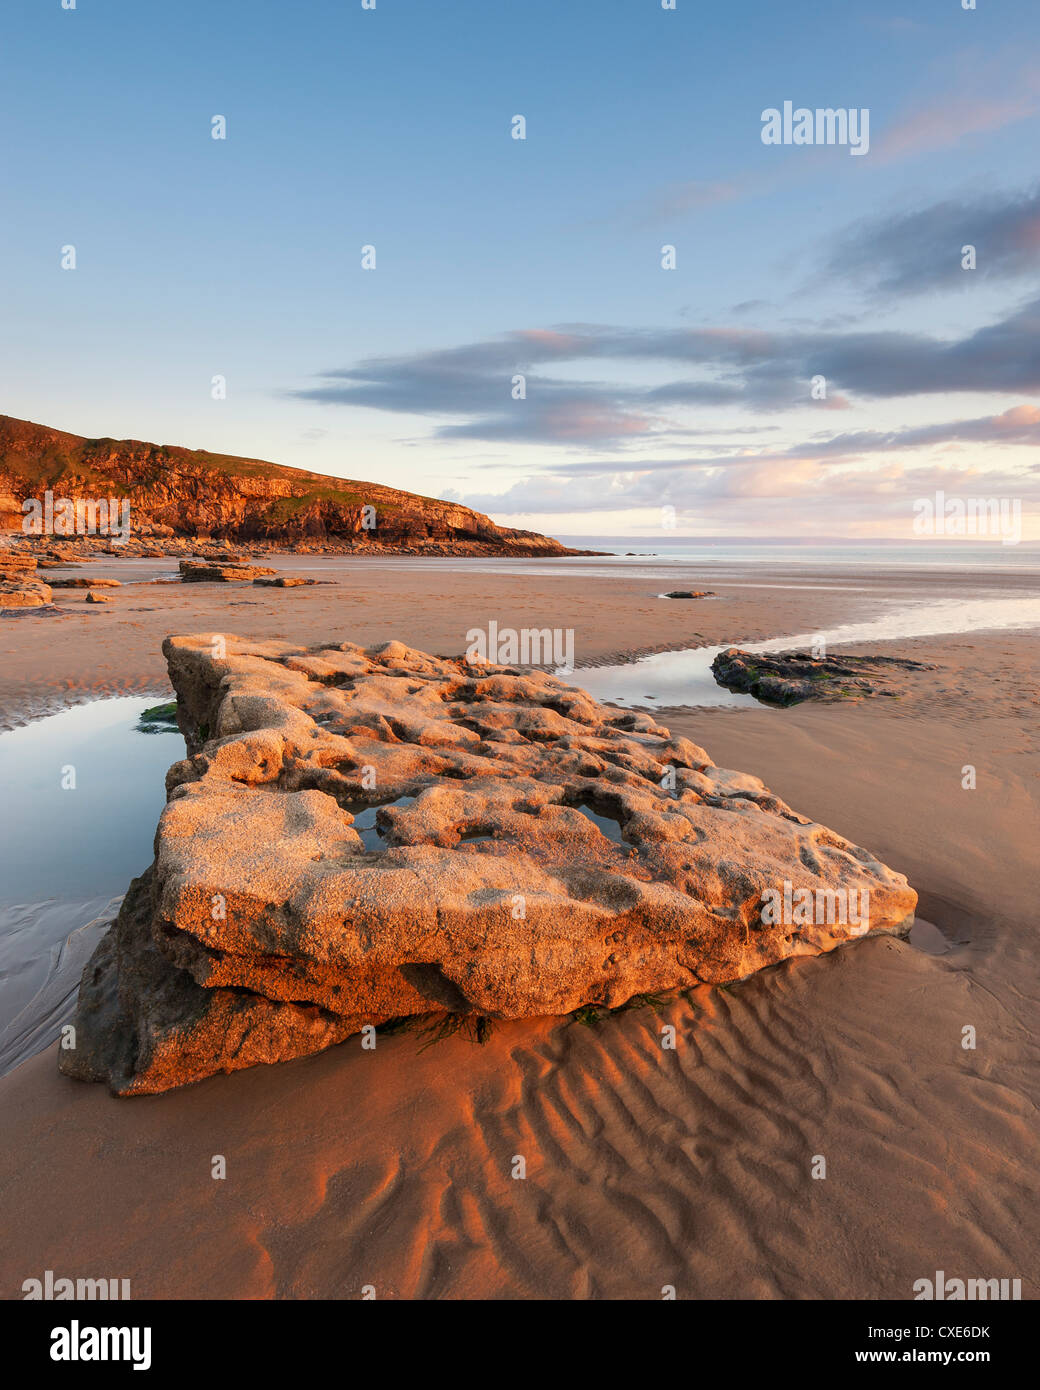 Sunset over rocks with flowing water at Dunraven Bay, Southerndown, Wales - Stock Image